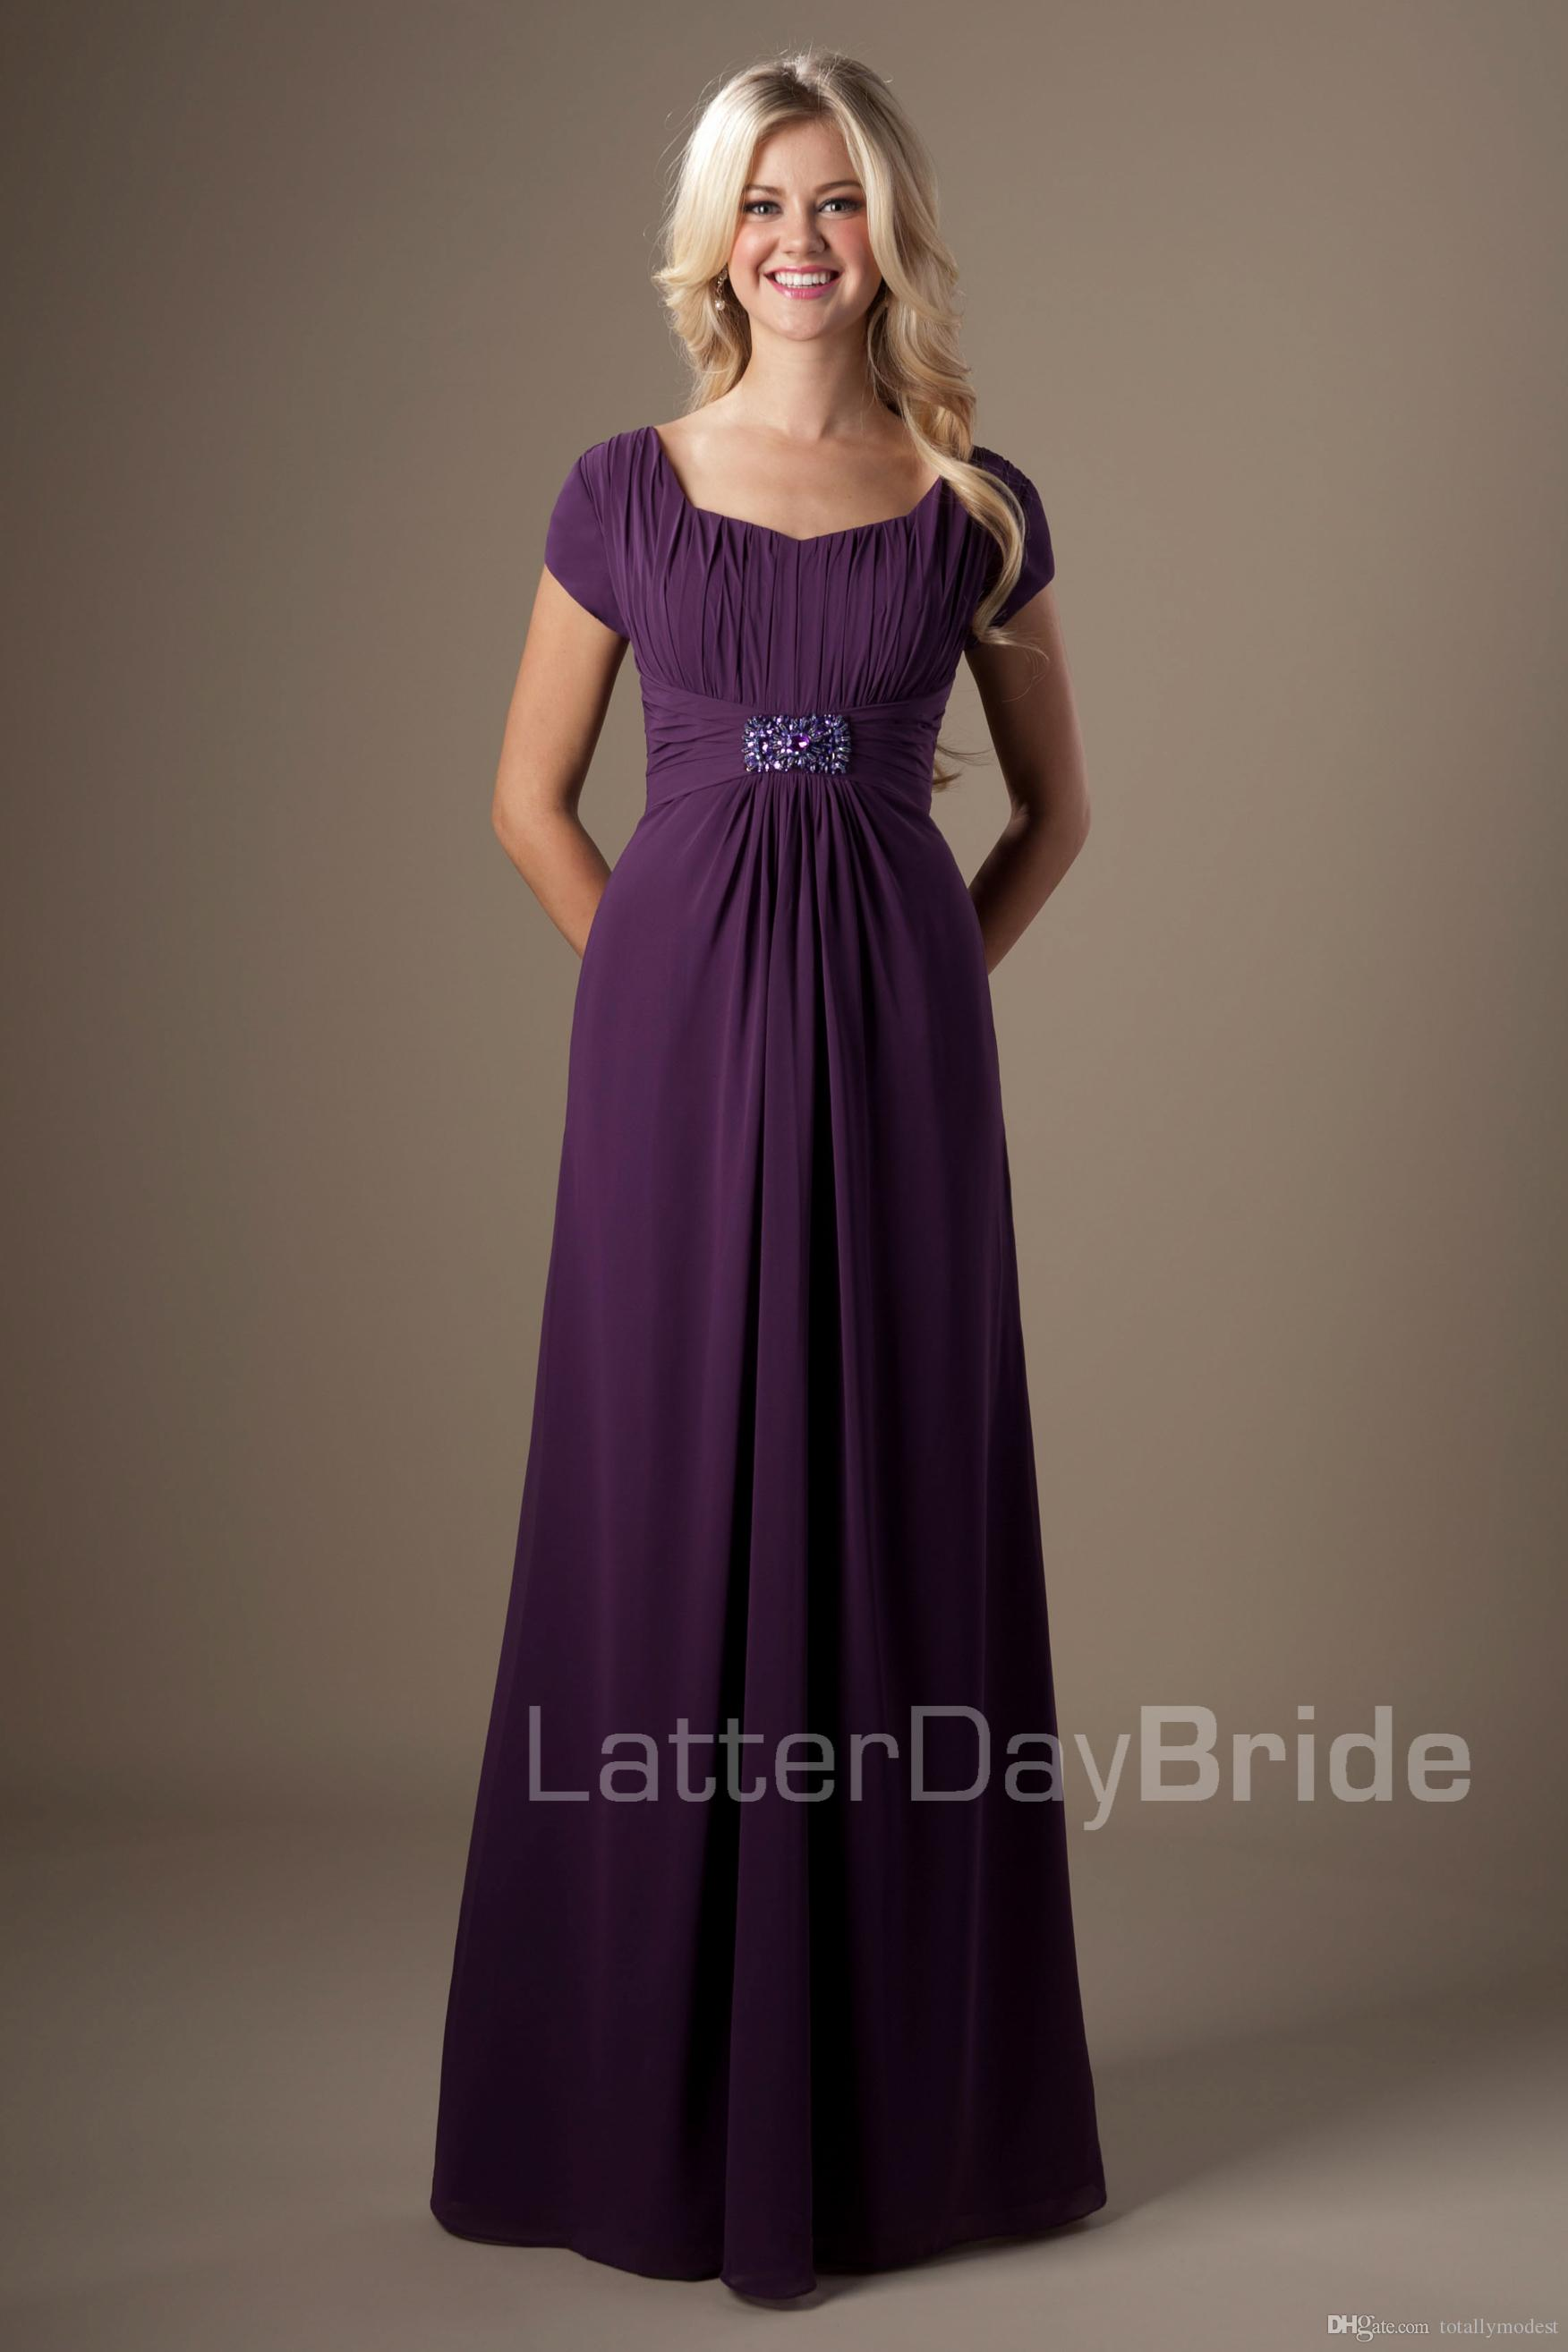 Eggplant wedding dresses online eggplant wedding dresses for sale eggplant puprle lace chiffon modest bridesmaid dresses with short sleeves a line temple wedding guests dresses long maids of honor dresses ombrellifo Images